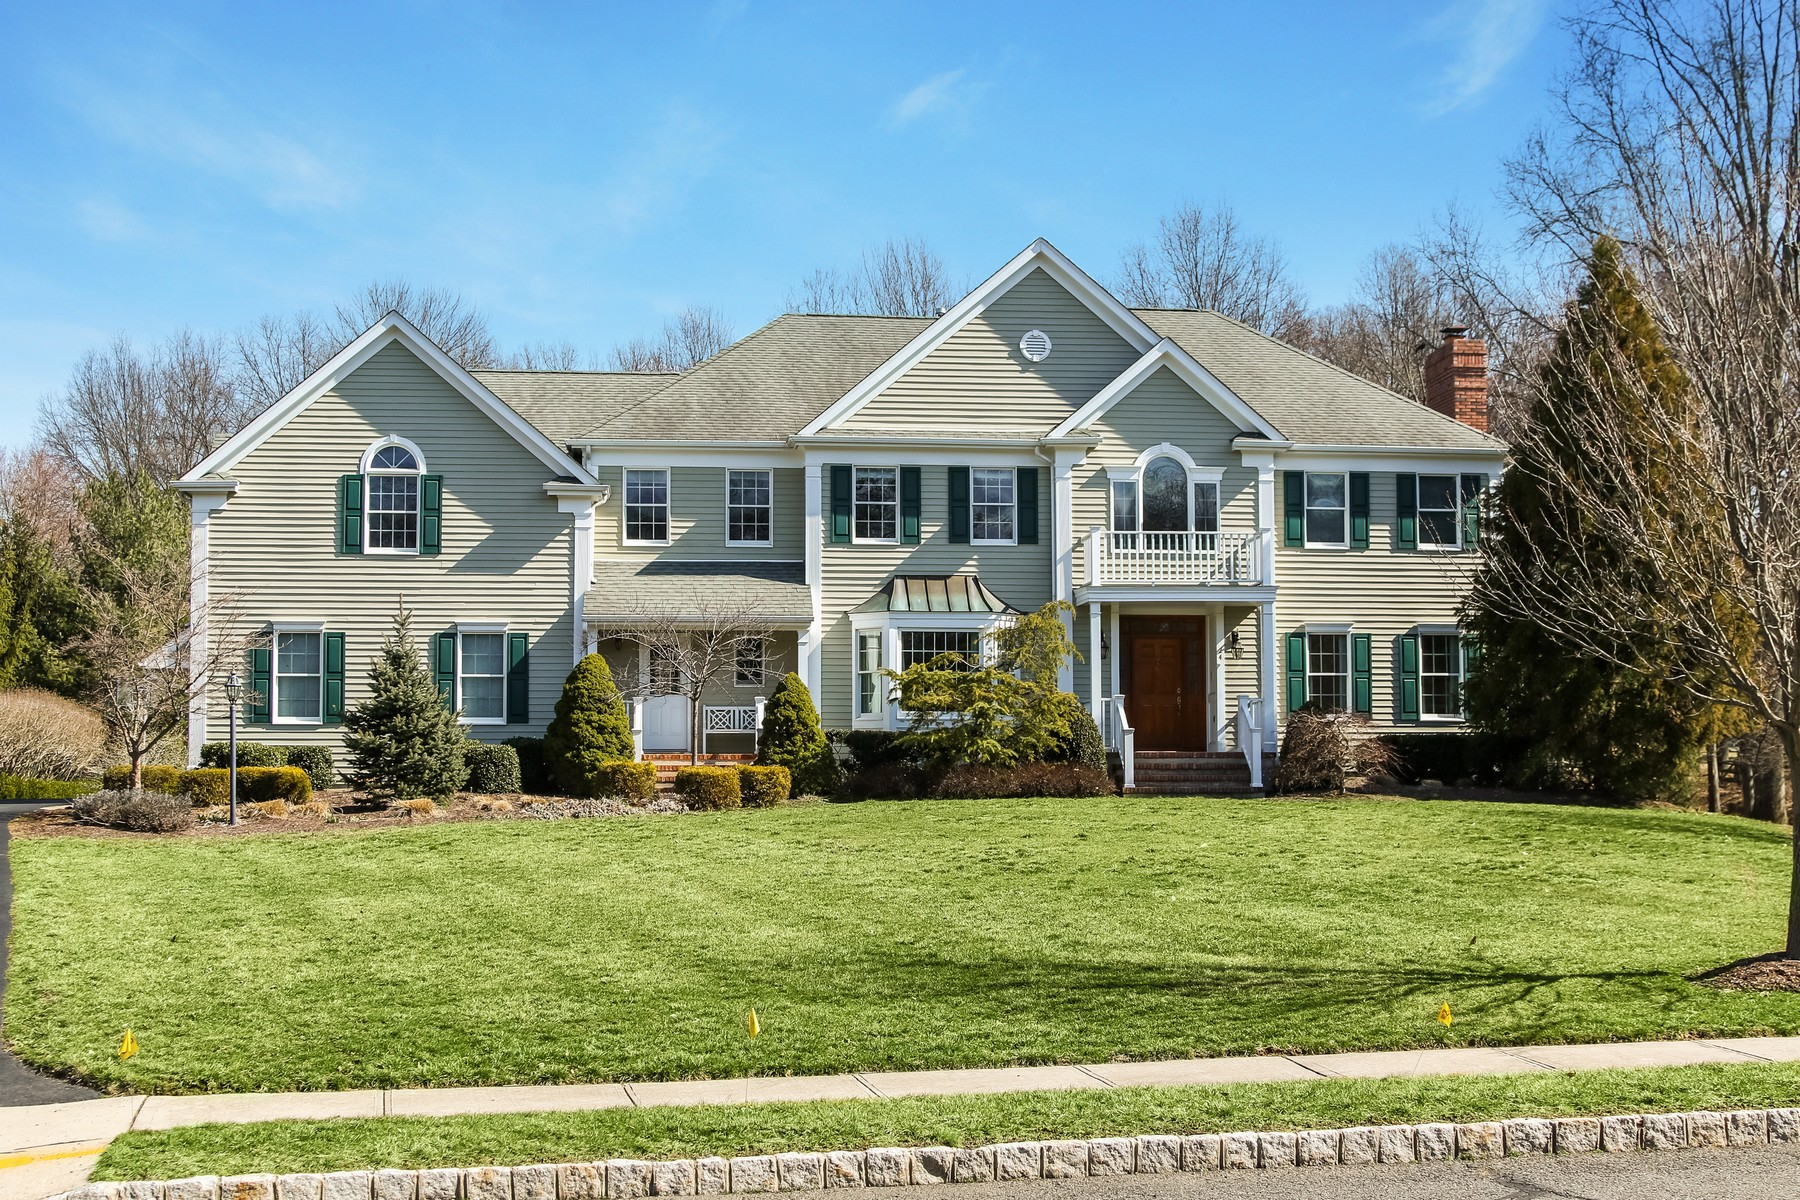 Single Family Home for Sale at Custom Center Hall Colonial 24 N Stone Hedge Drive Basking Ridge, New Jersey 07920 United States